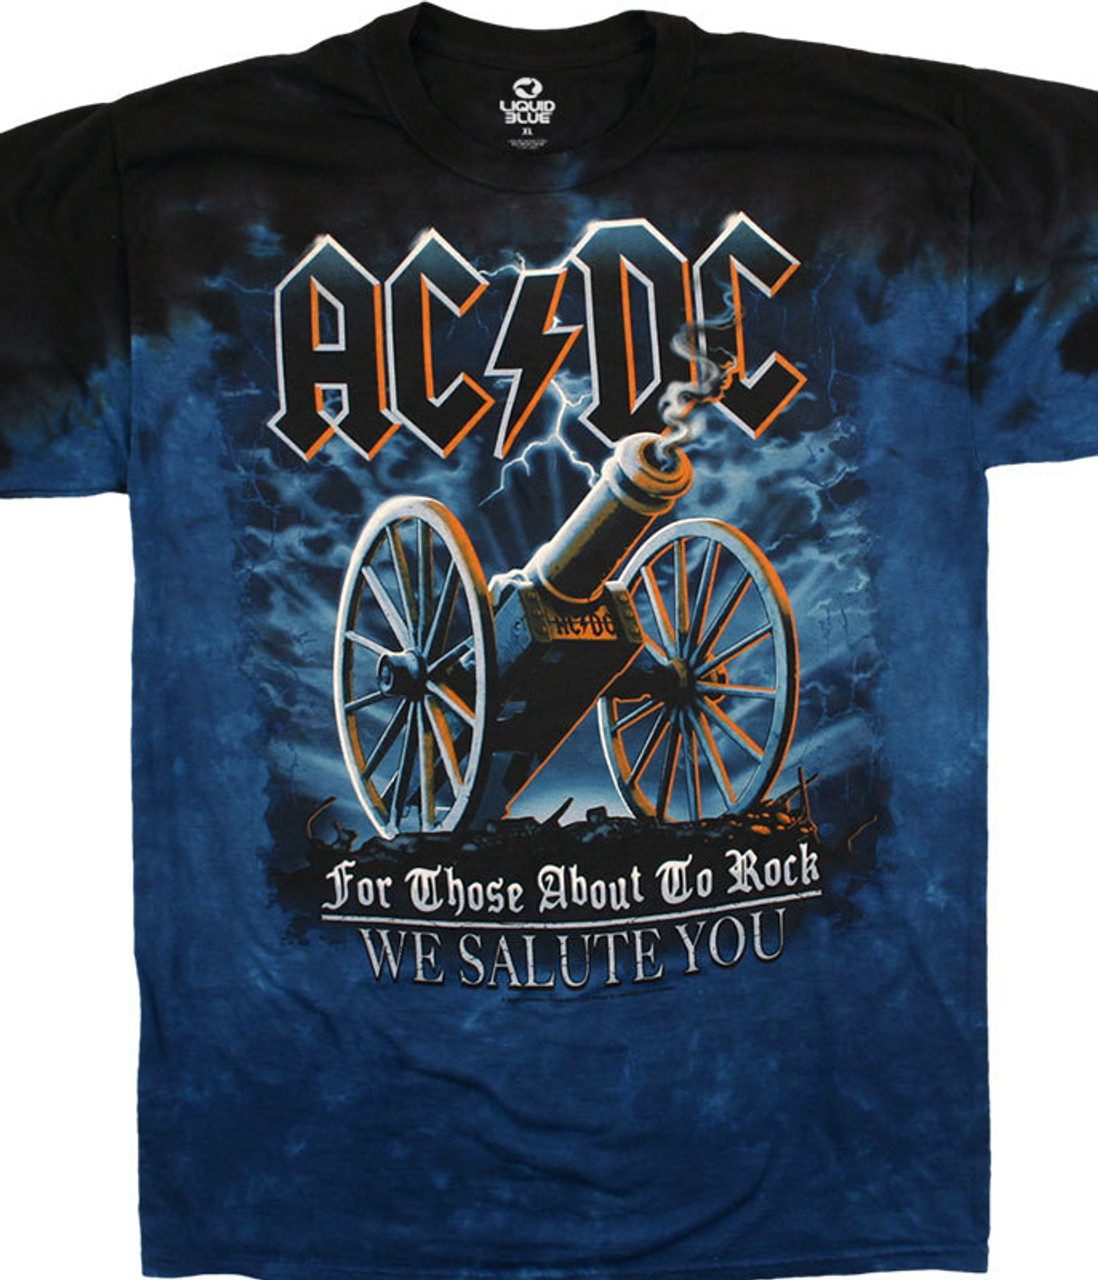 ACDC For Those About to Rock Cannon Album Cover Men/'s T Shirt Concert Tour Merch